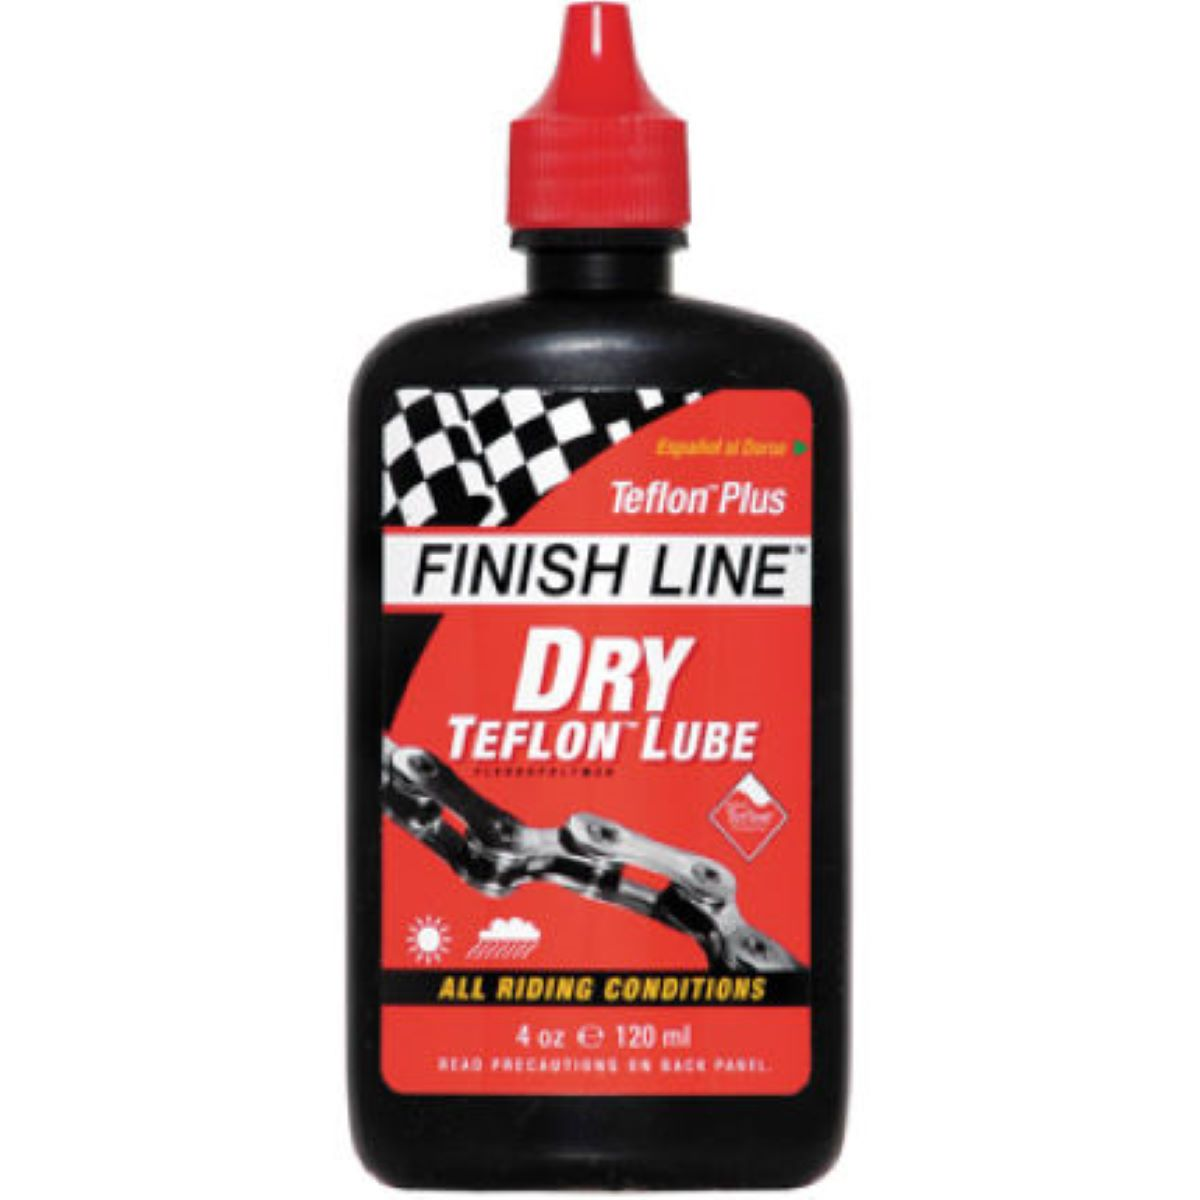 Cycling Bargains Lube Squeeze Bottles Finish Line